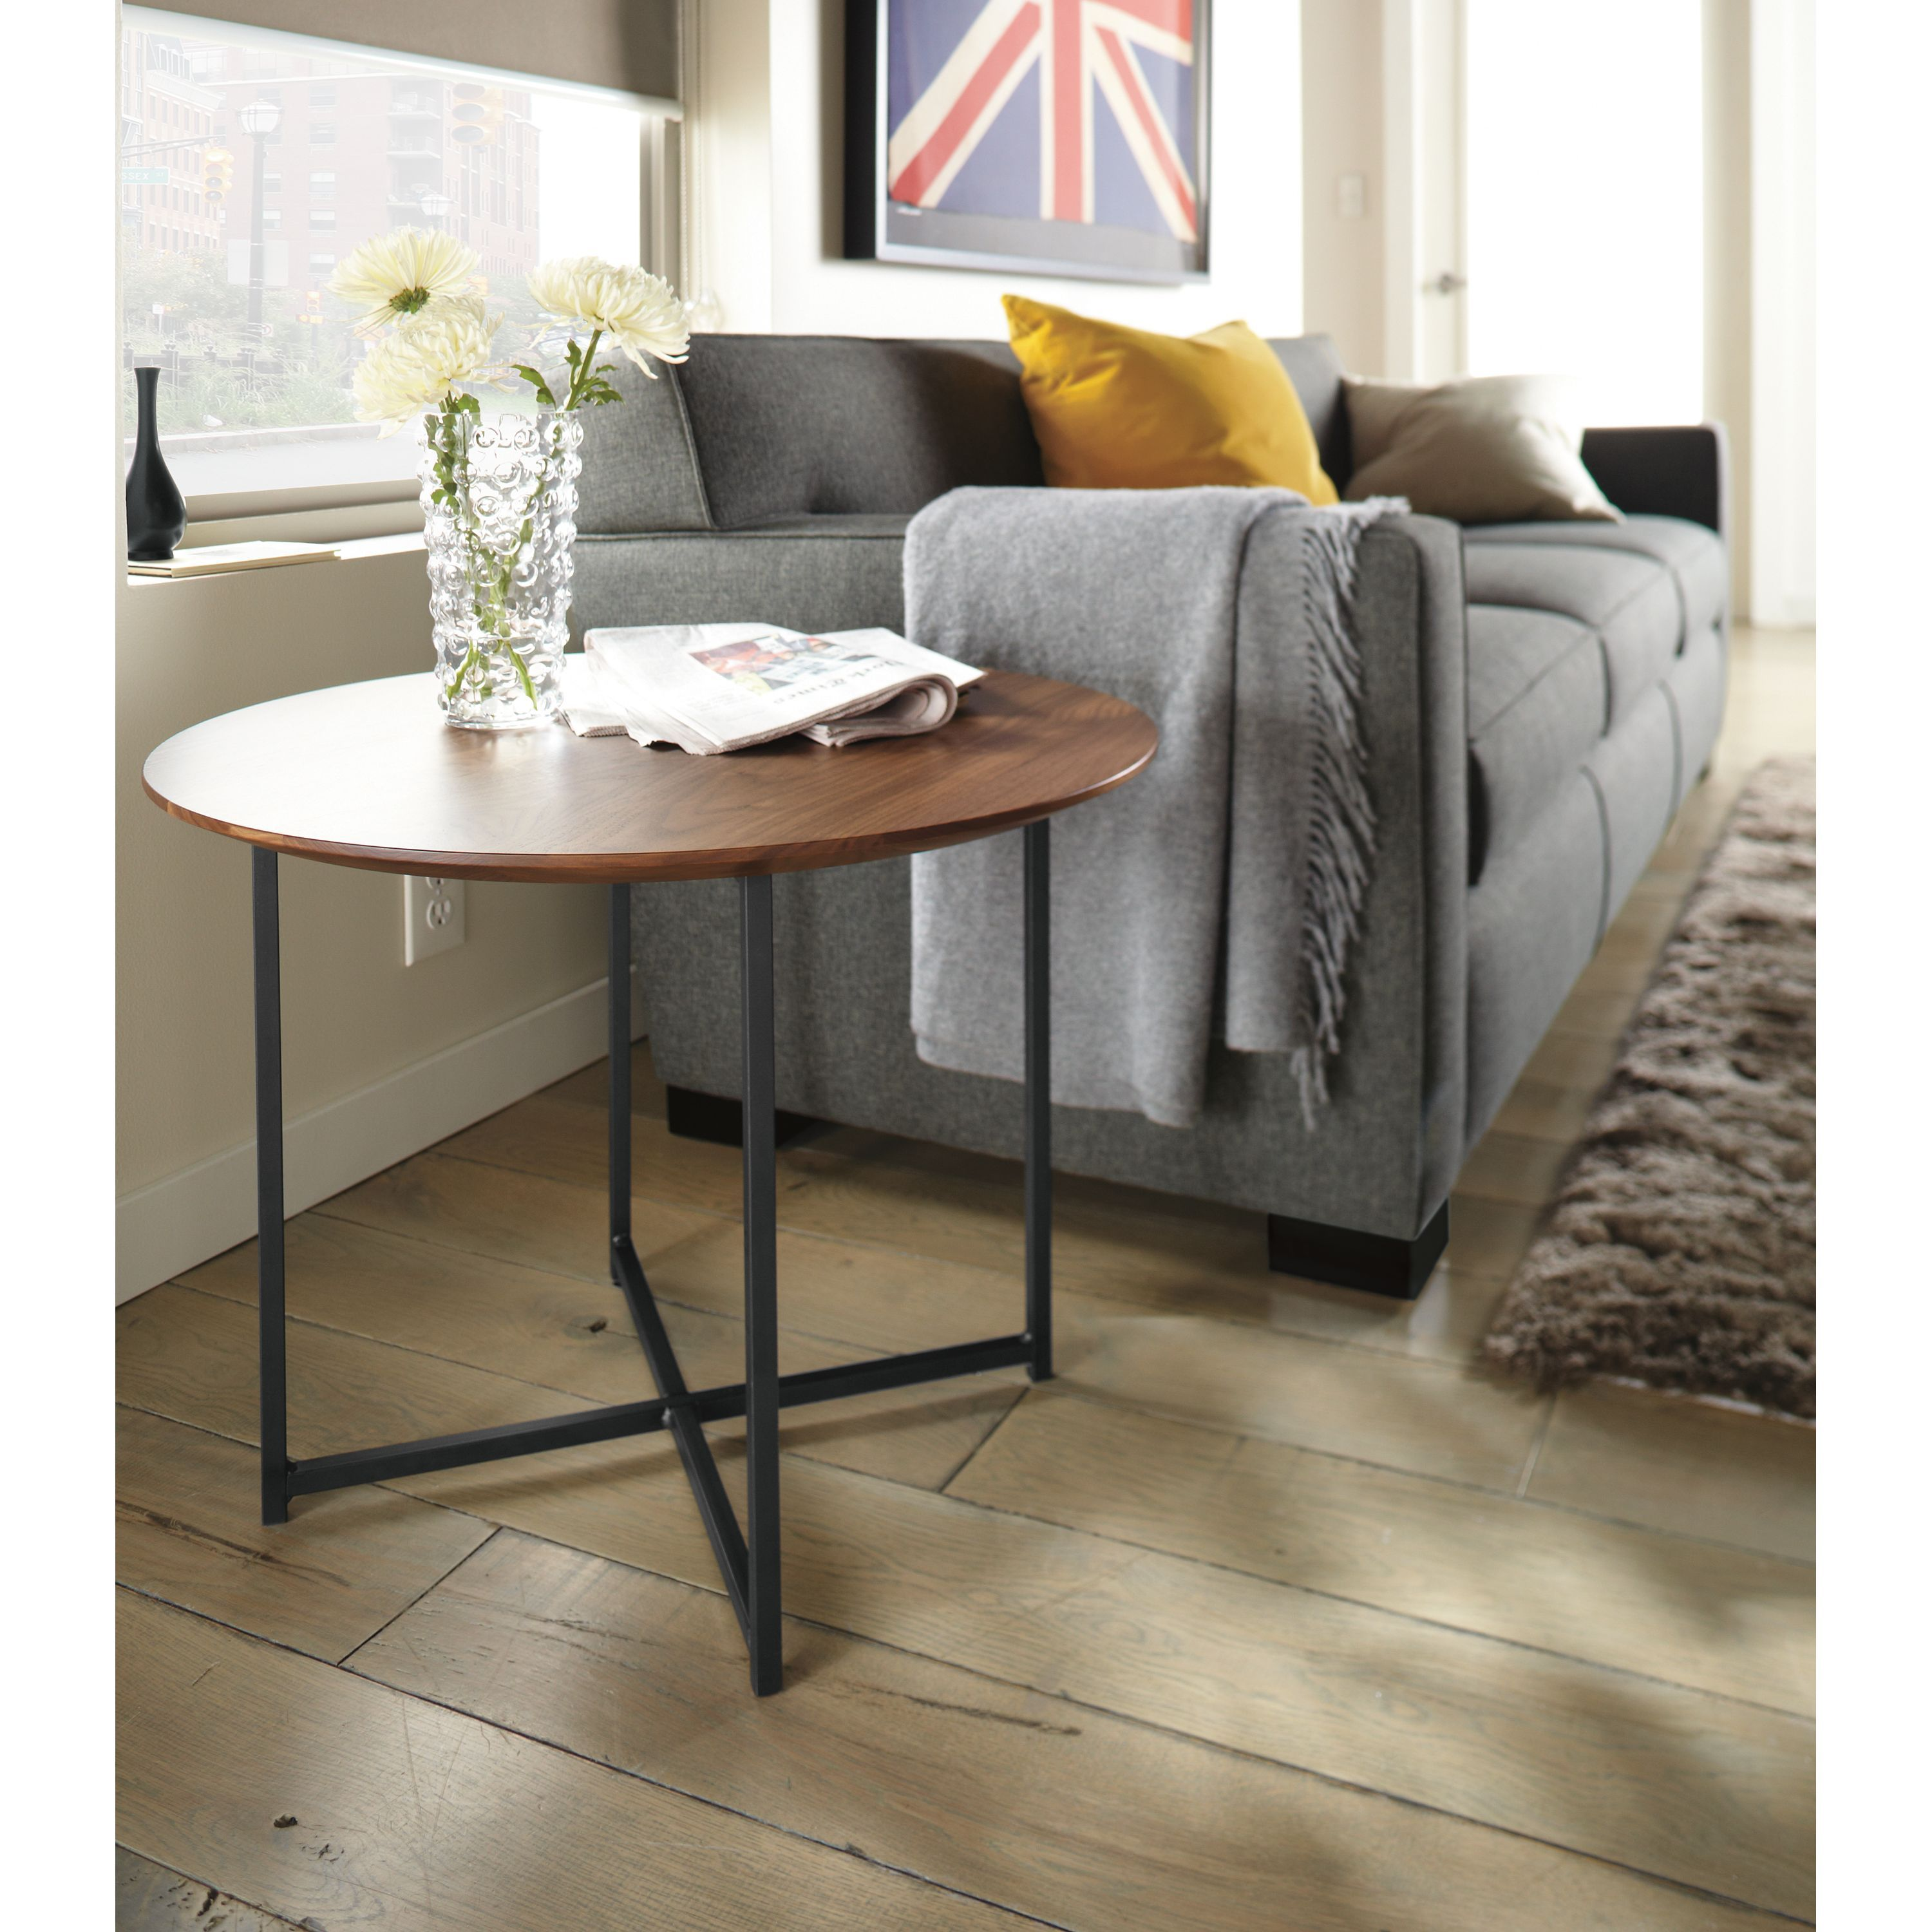 Room Amp Board Classic End Tables In Recycled Natural Steel Modern Furniture Living Room Farmhouse Living Room Furniture Living Room Furniture Room and board side table